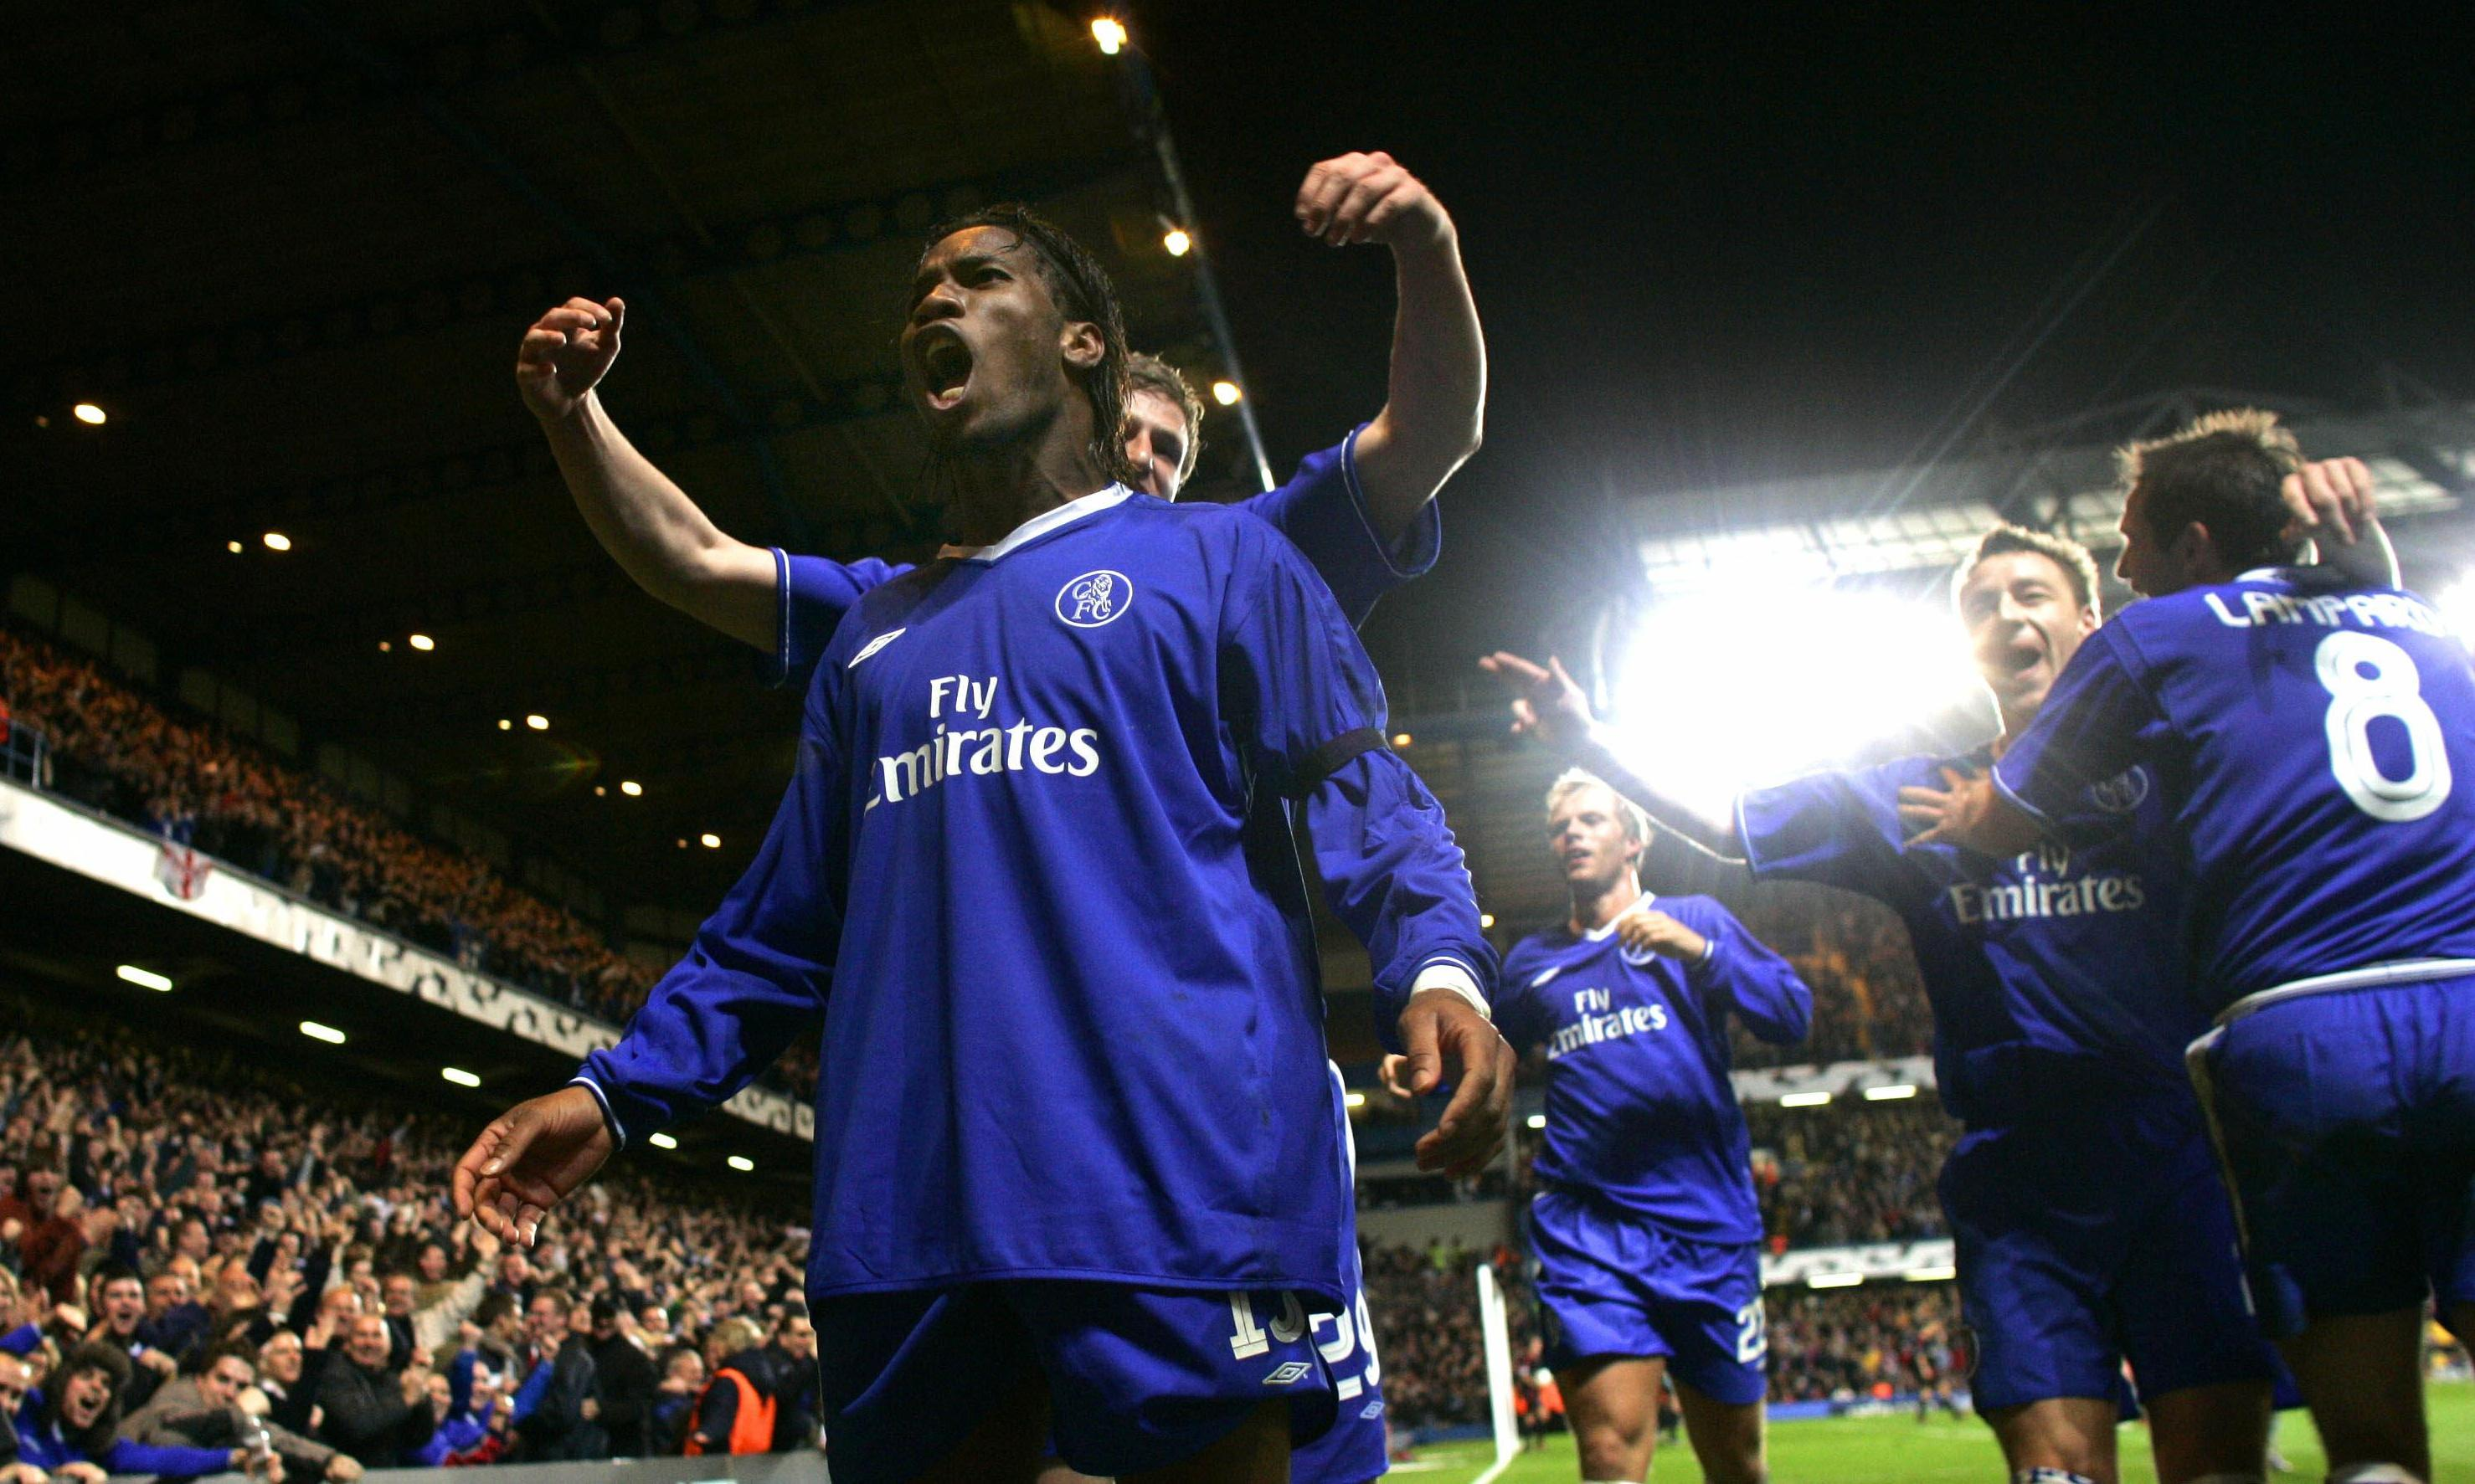 Chelsea v Bayern, an epic slam dunk contest and the best of padeling